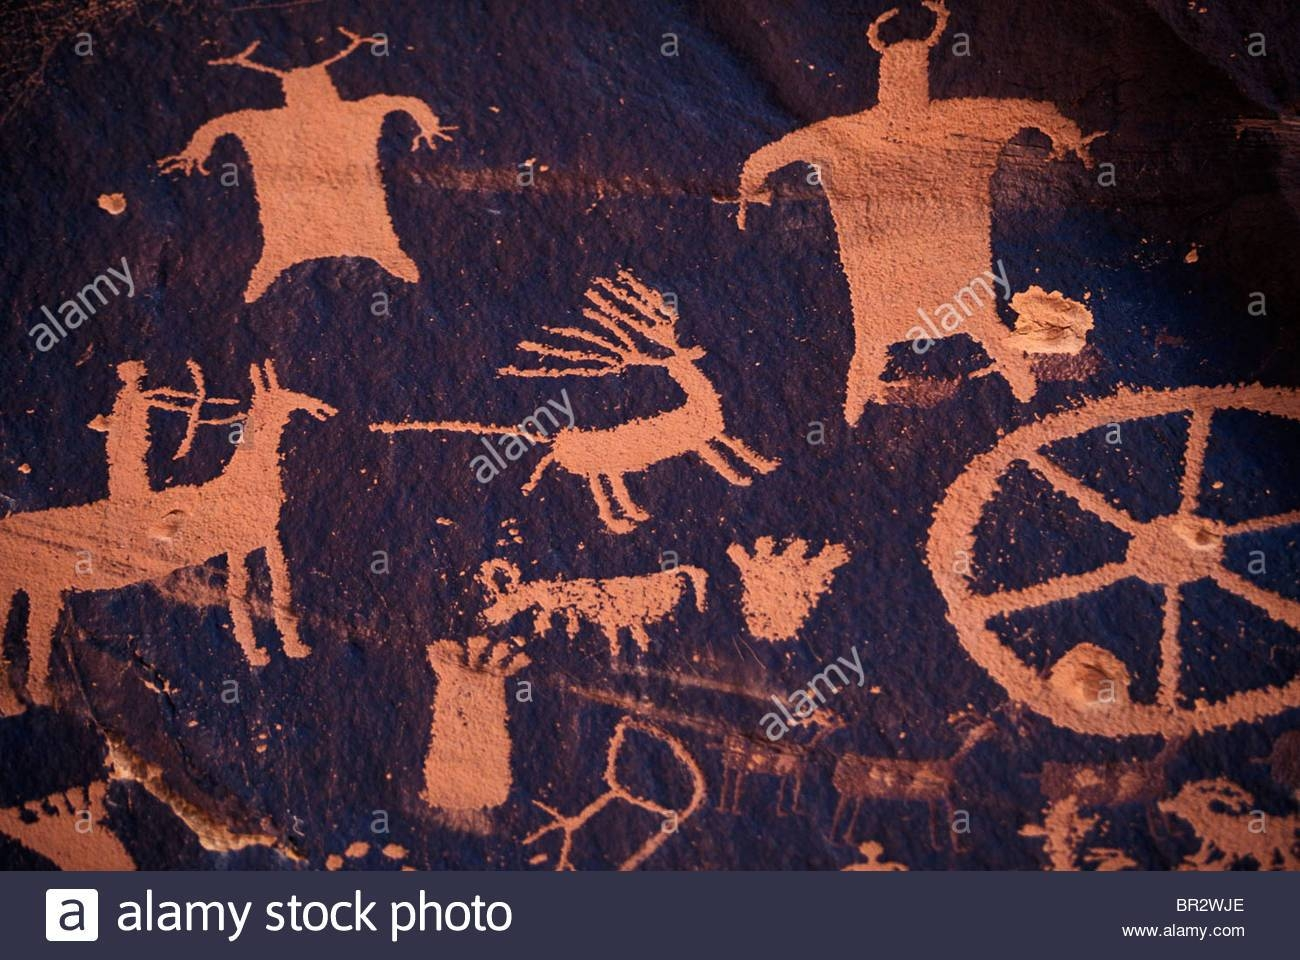 Native American Cave Art/wall Drawings Stock Photo, Royalty Free In Newest Native American Wall Art (View 20 of 25)